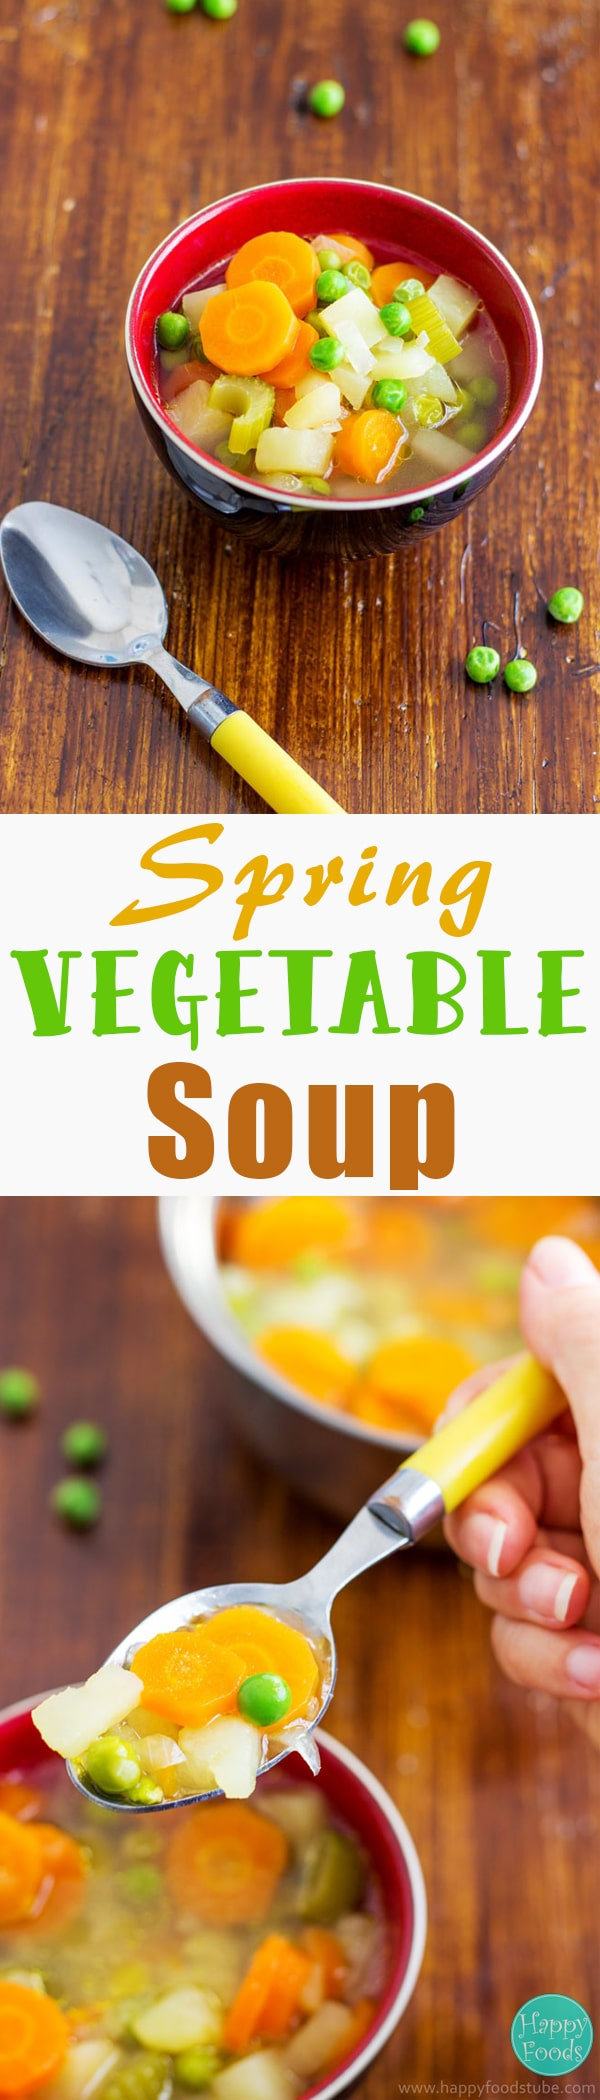 5-Ingredient Spring Vegetables Soup - quick & easy soup recipe, healthy, light, vegetarian. Carrots, celery, potatoes, peas & onion are the main ingredients here